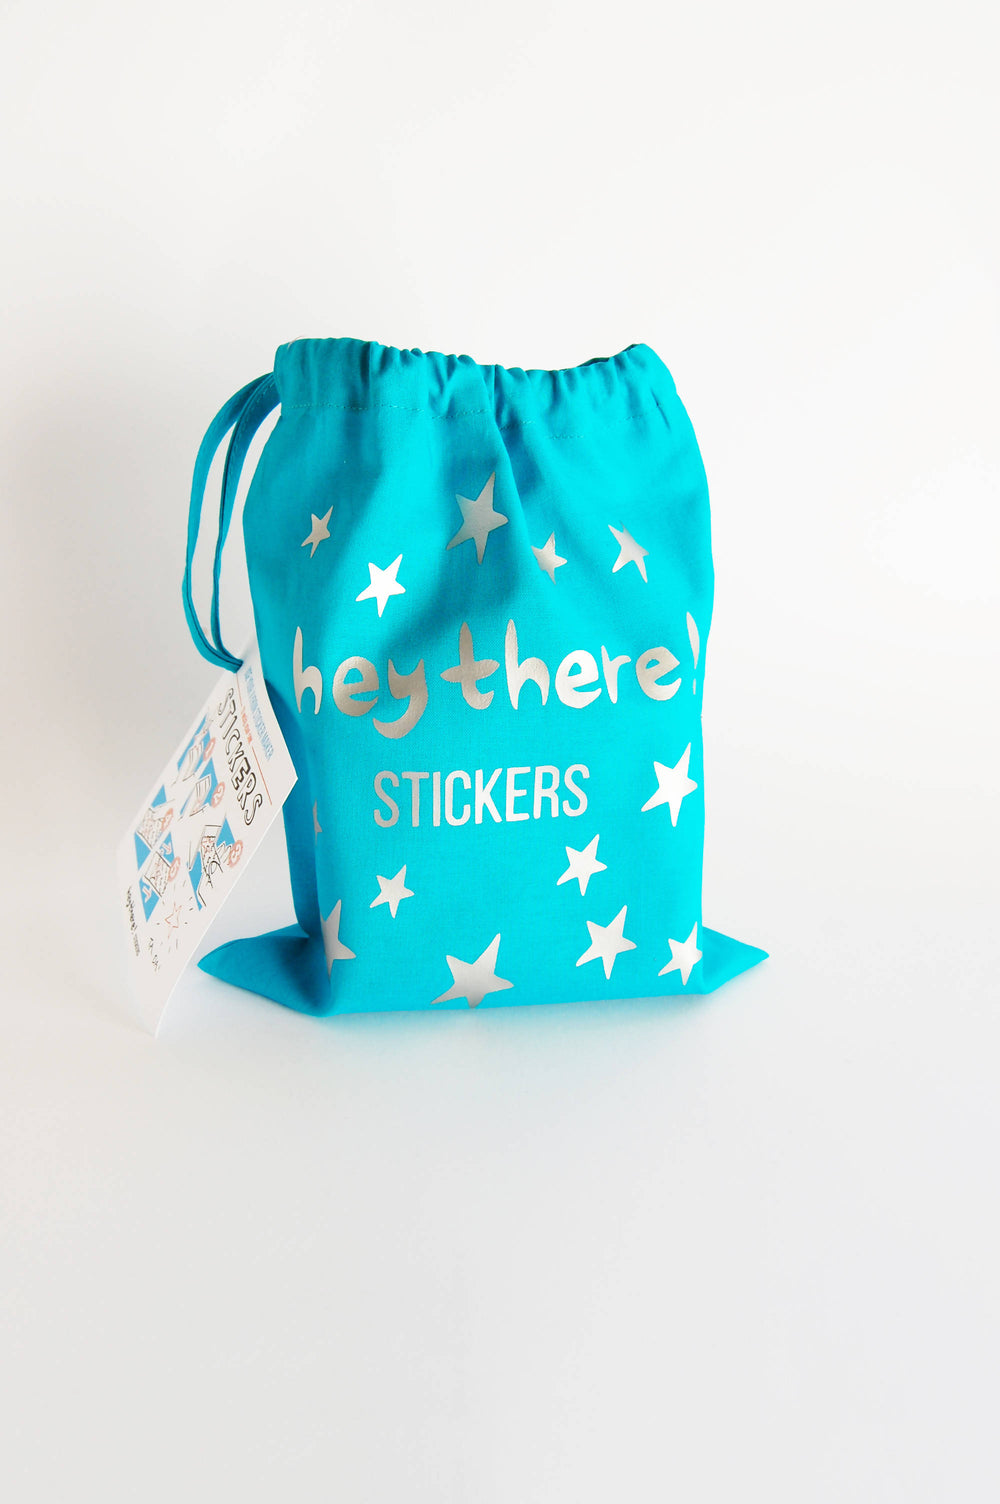 Turquoise Sticker Maker Kit